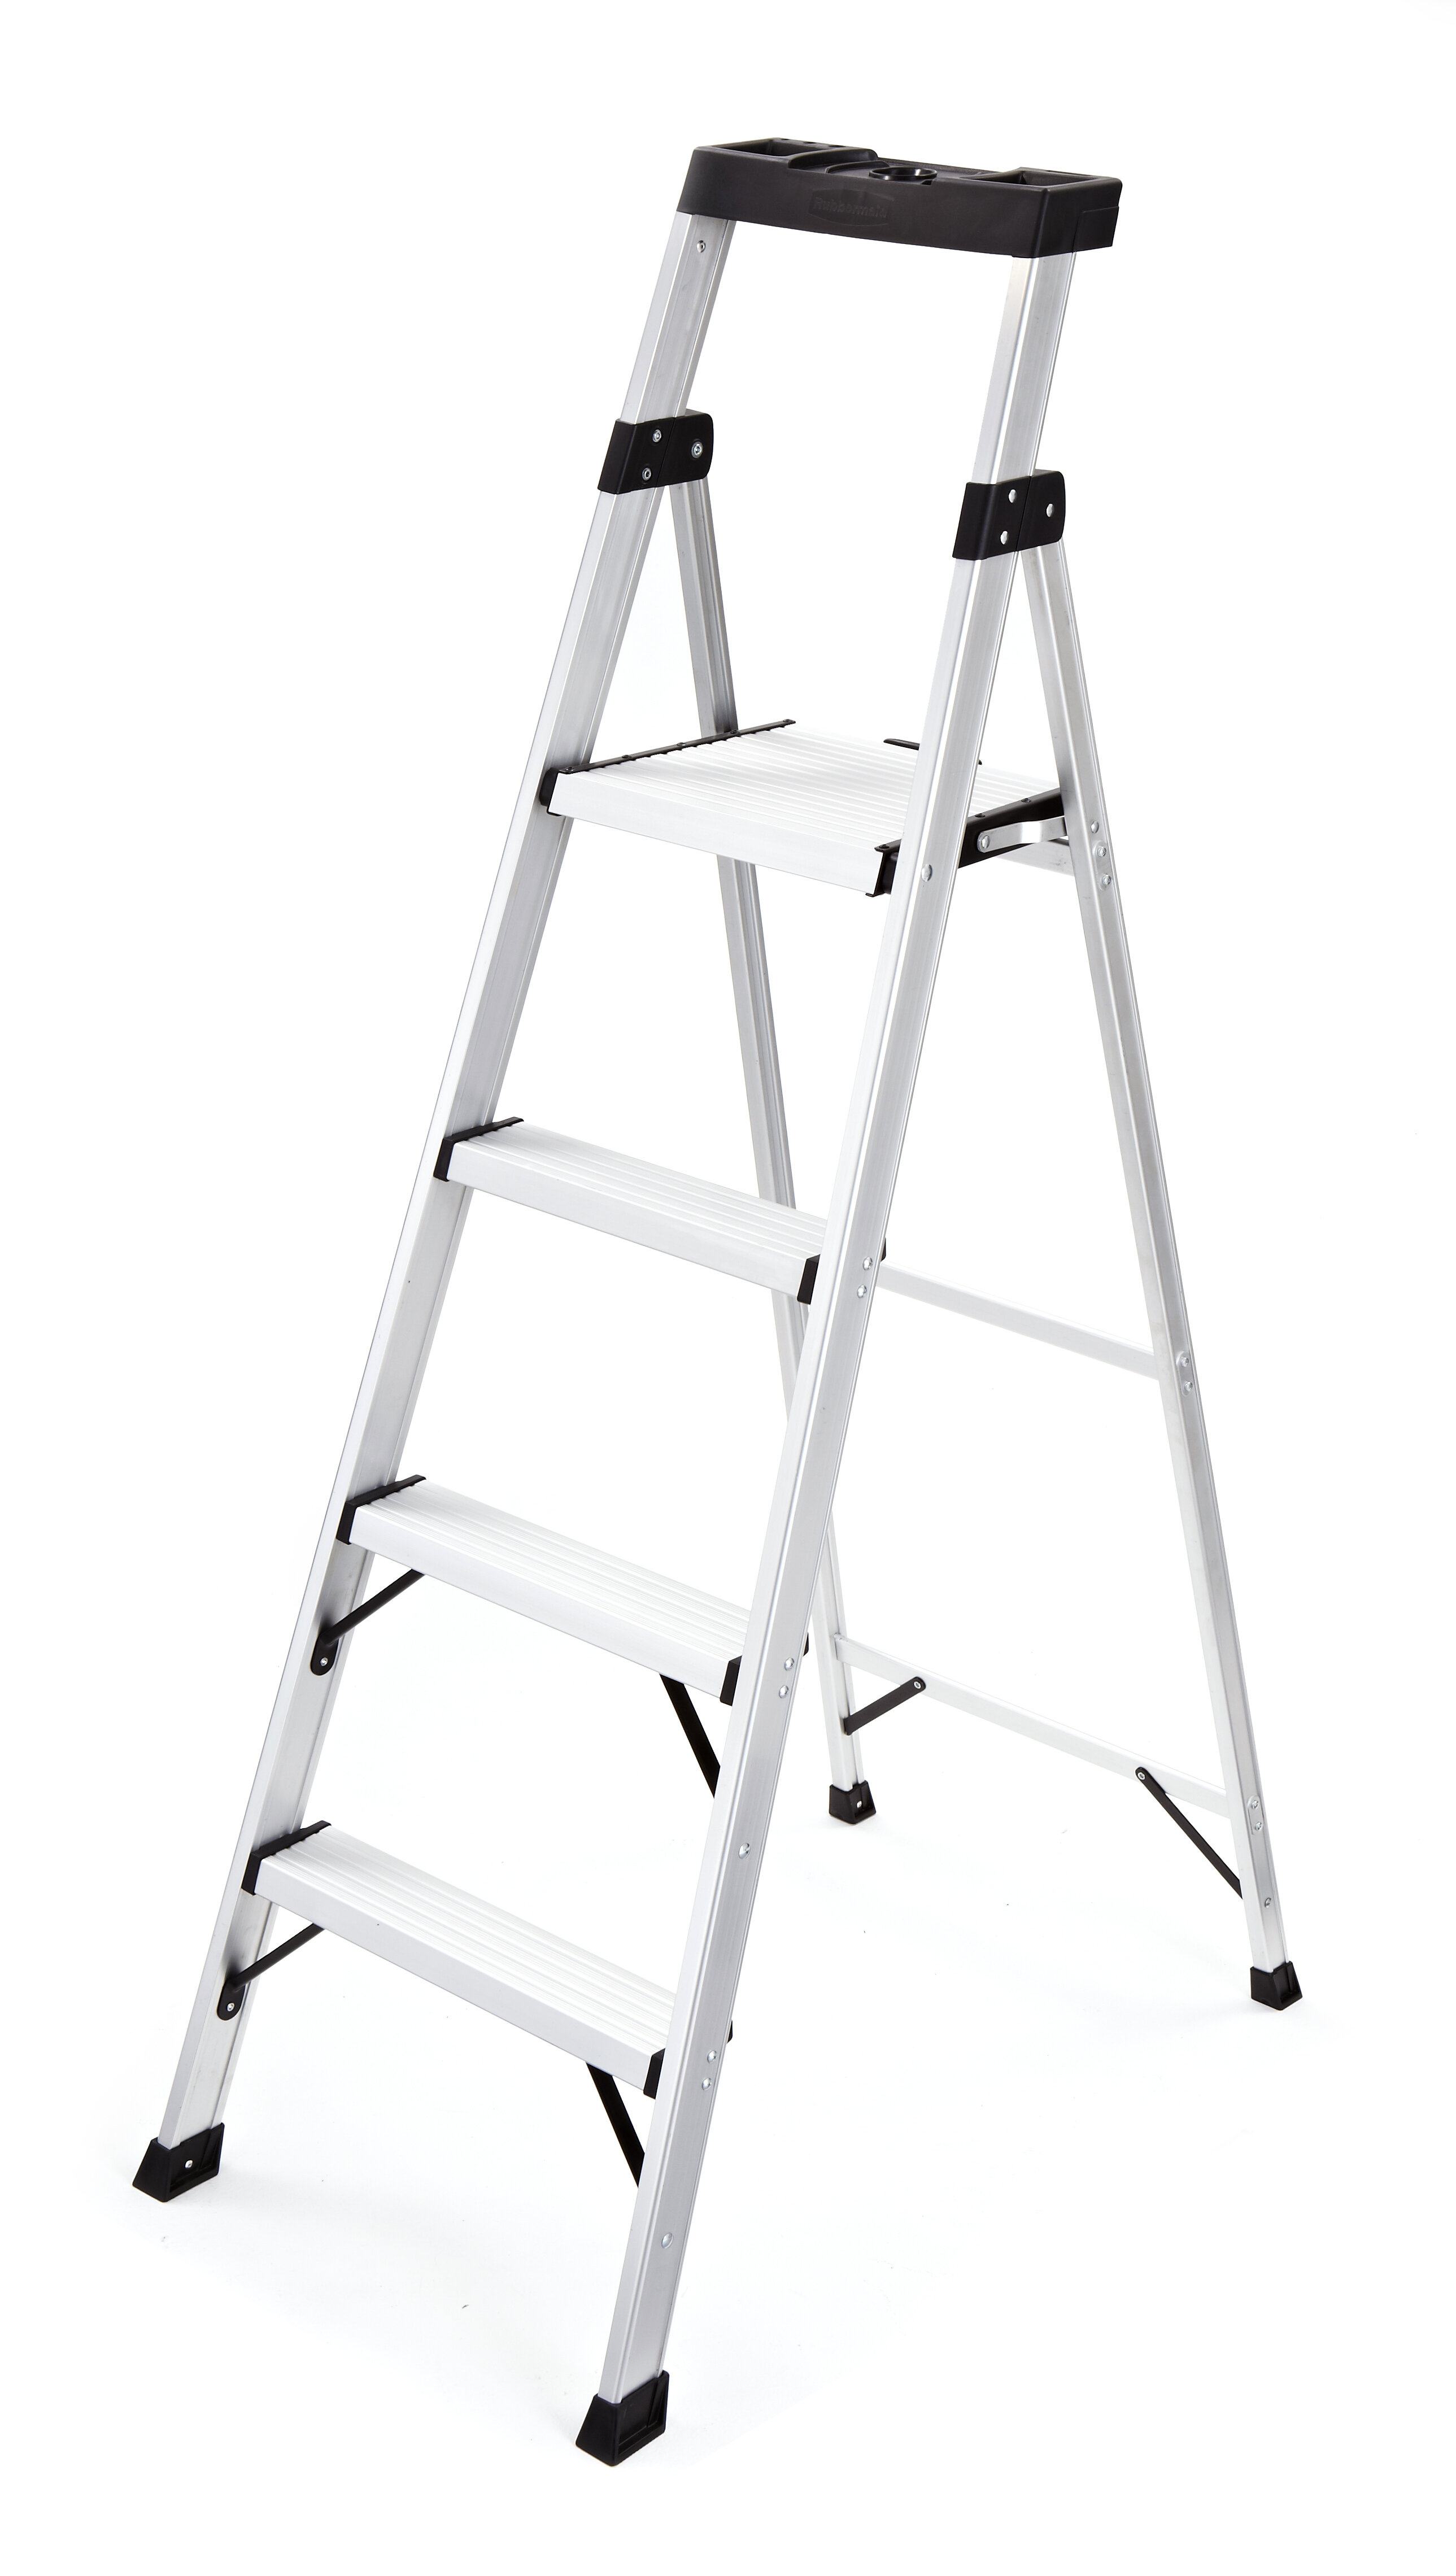 Wondrous 5 71 Ft Aluminum Step Ladder With 250 Lb Load Capacity Gamerscity Chair Design For Home Gamerscityorg